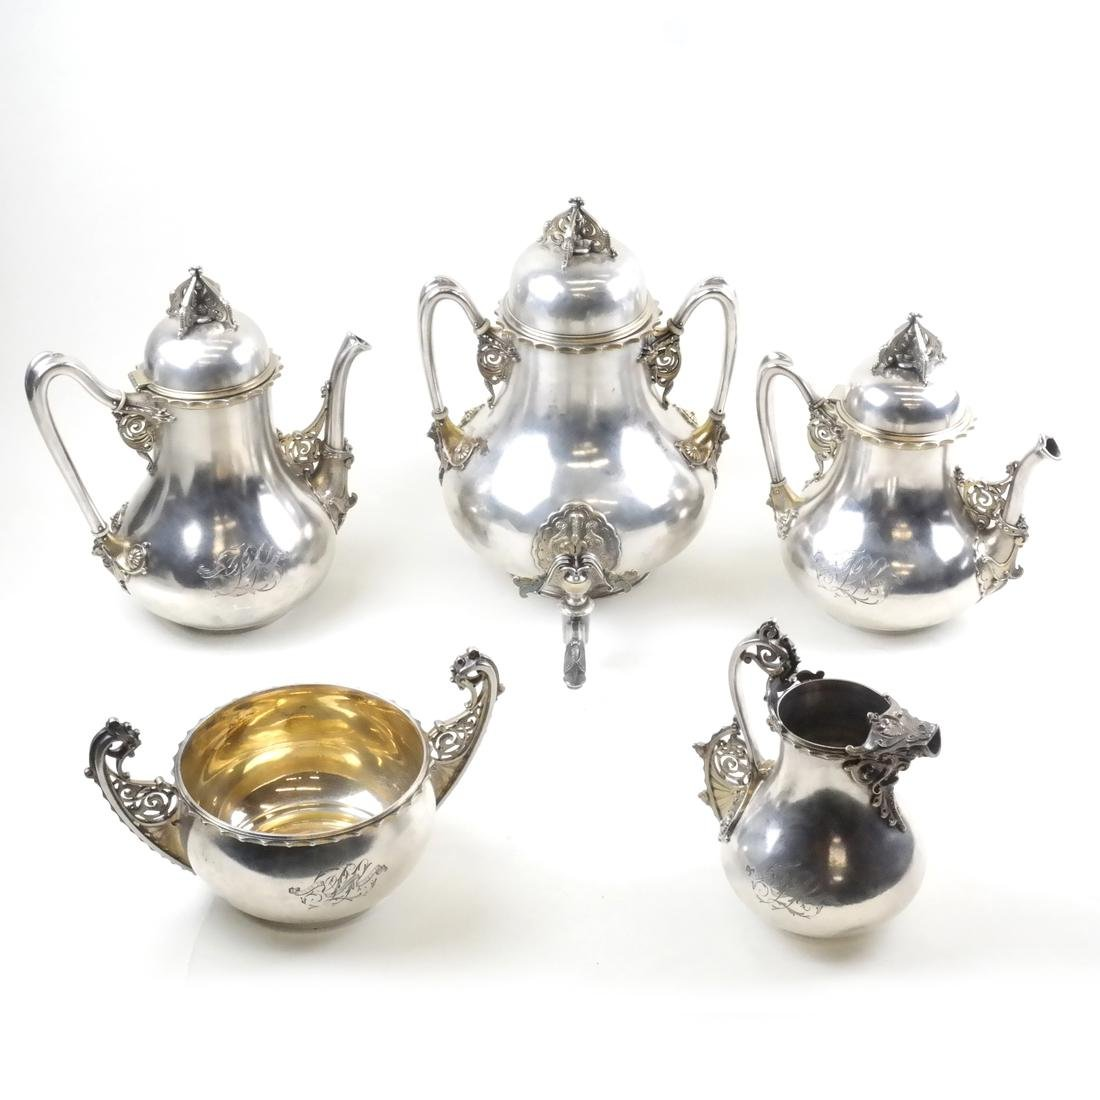 Rare Tiffany & Co. Sterling 5-Piece Tea & Coffee